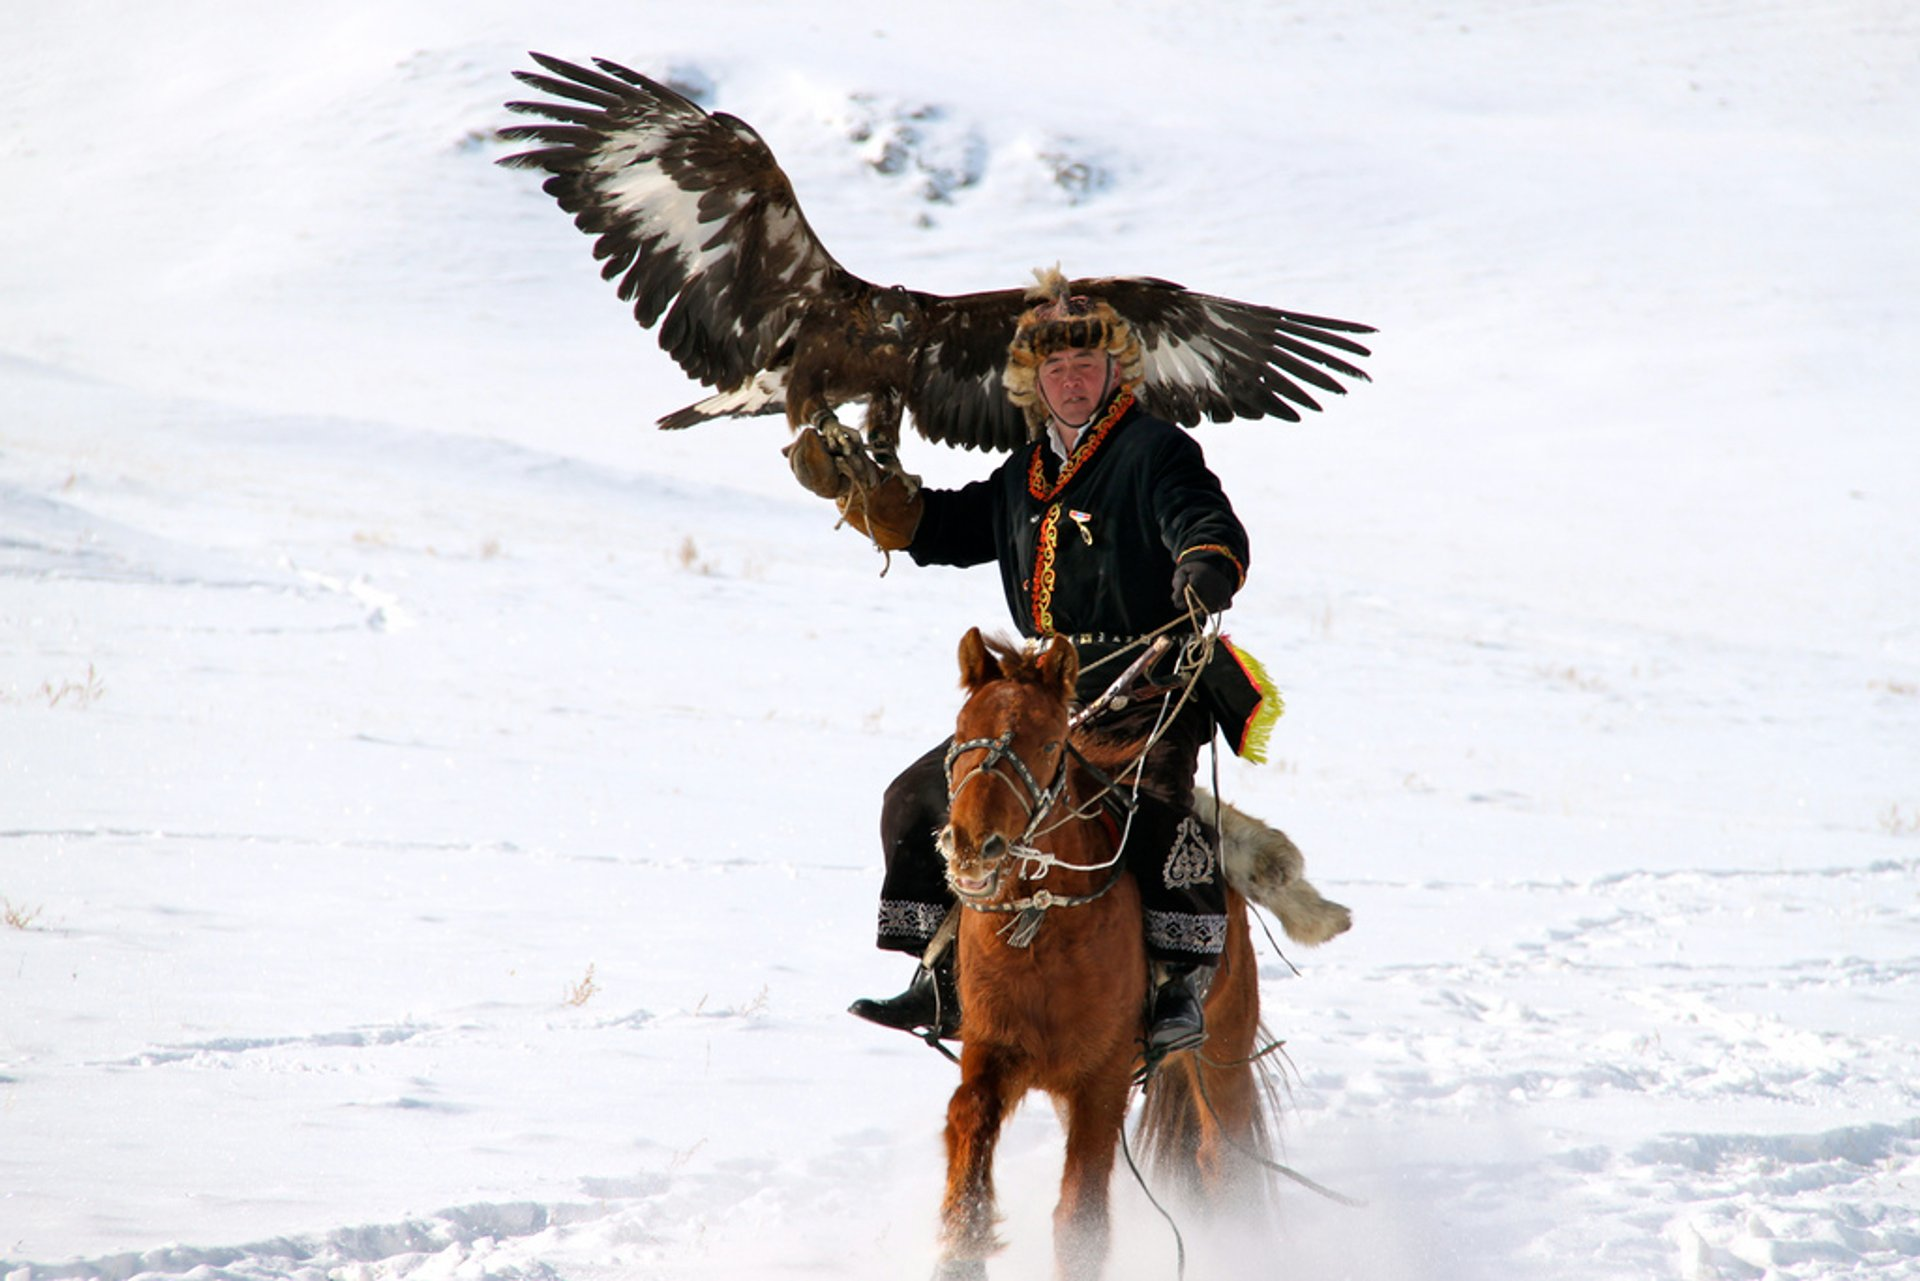 Hunting with Eagles in Mongolia 2019 - Best Time